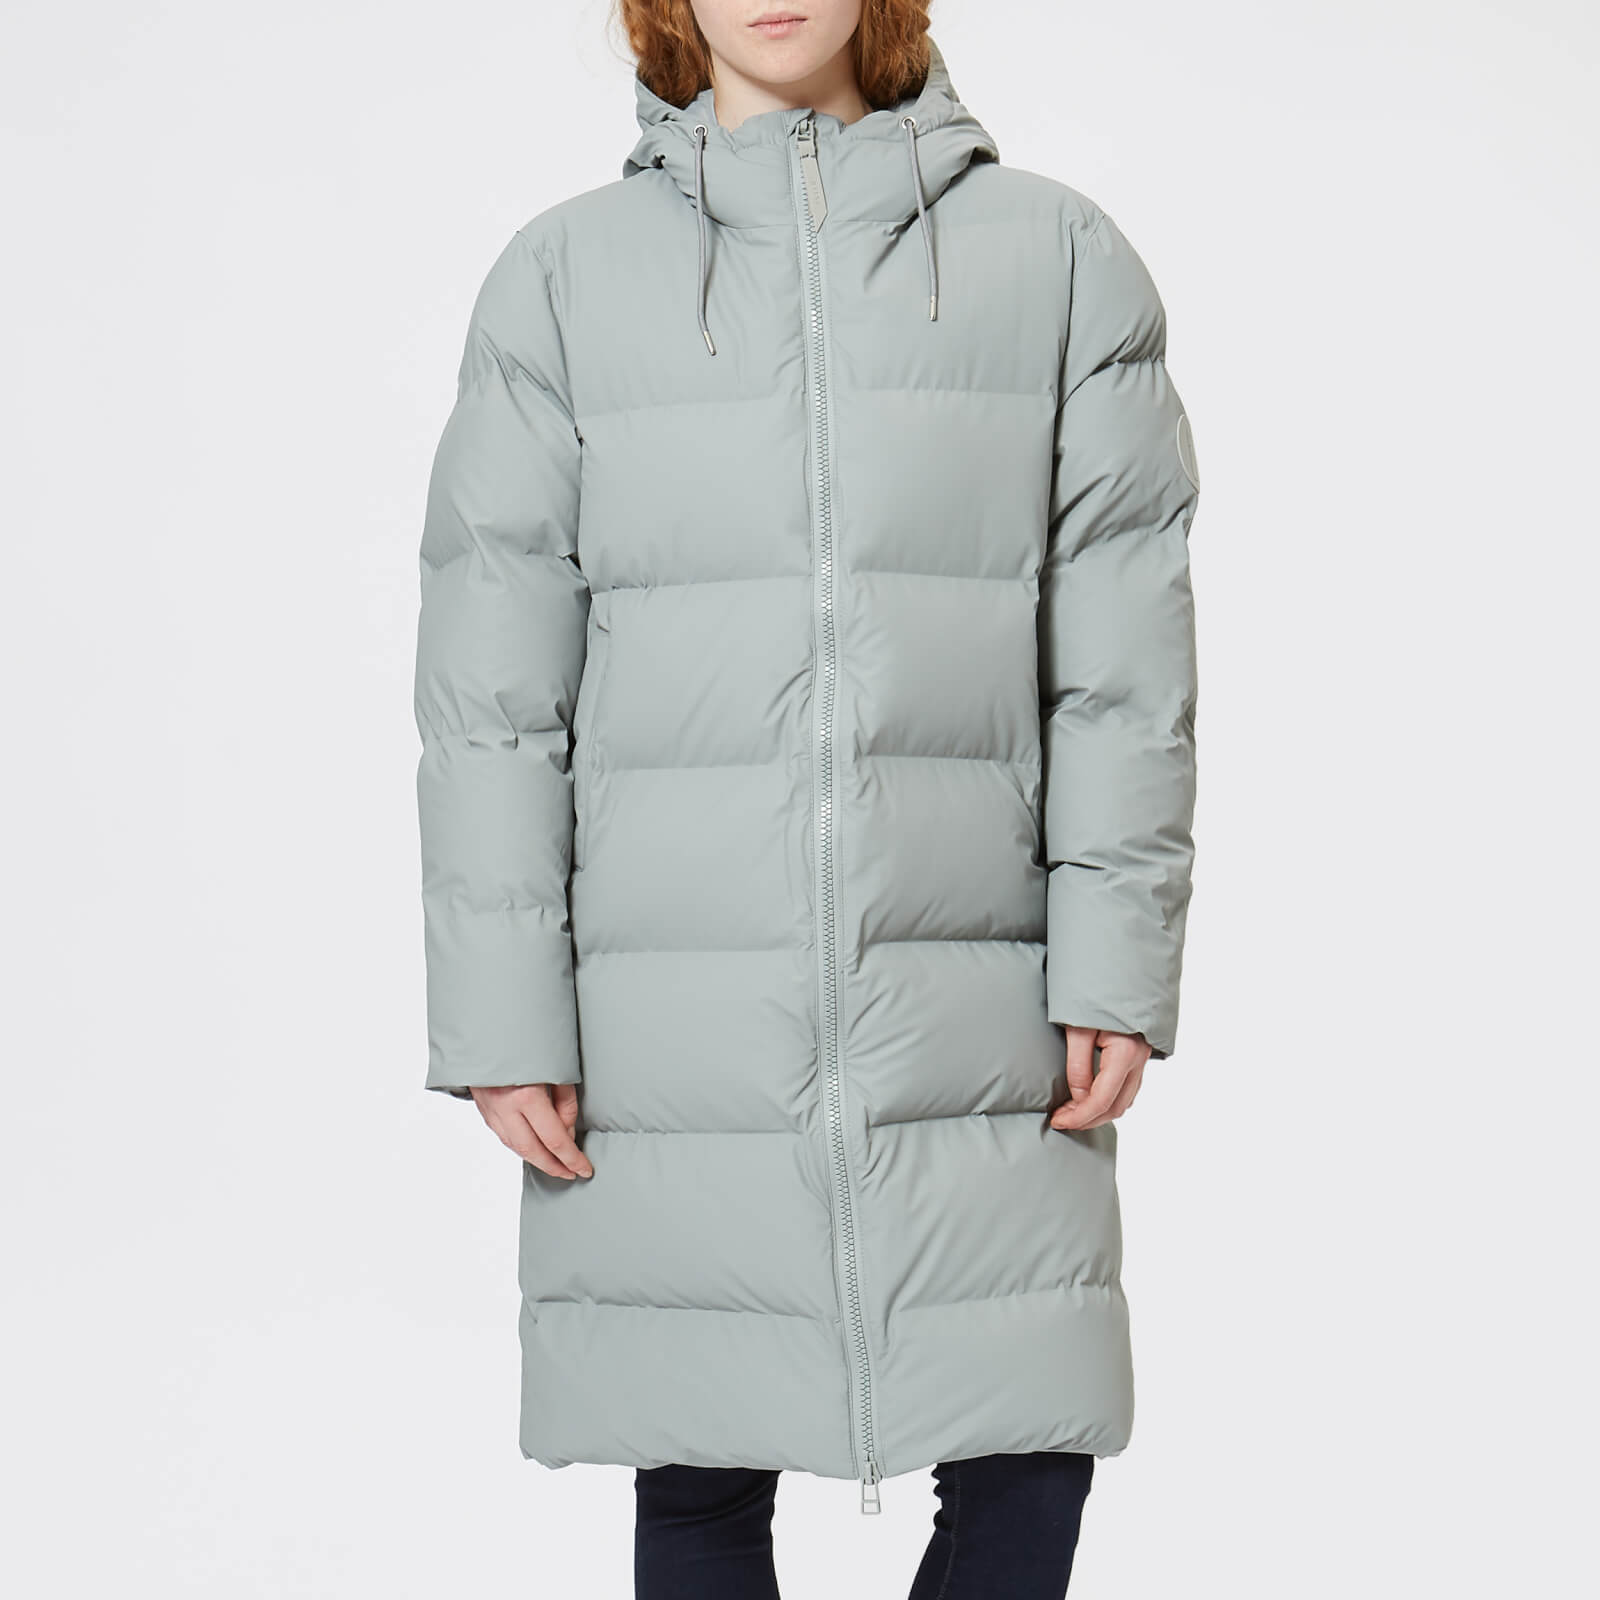 c5ff387a6 RAINS Women's Long Puffa Jacket - Stone - Free UK Delivery over £50